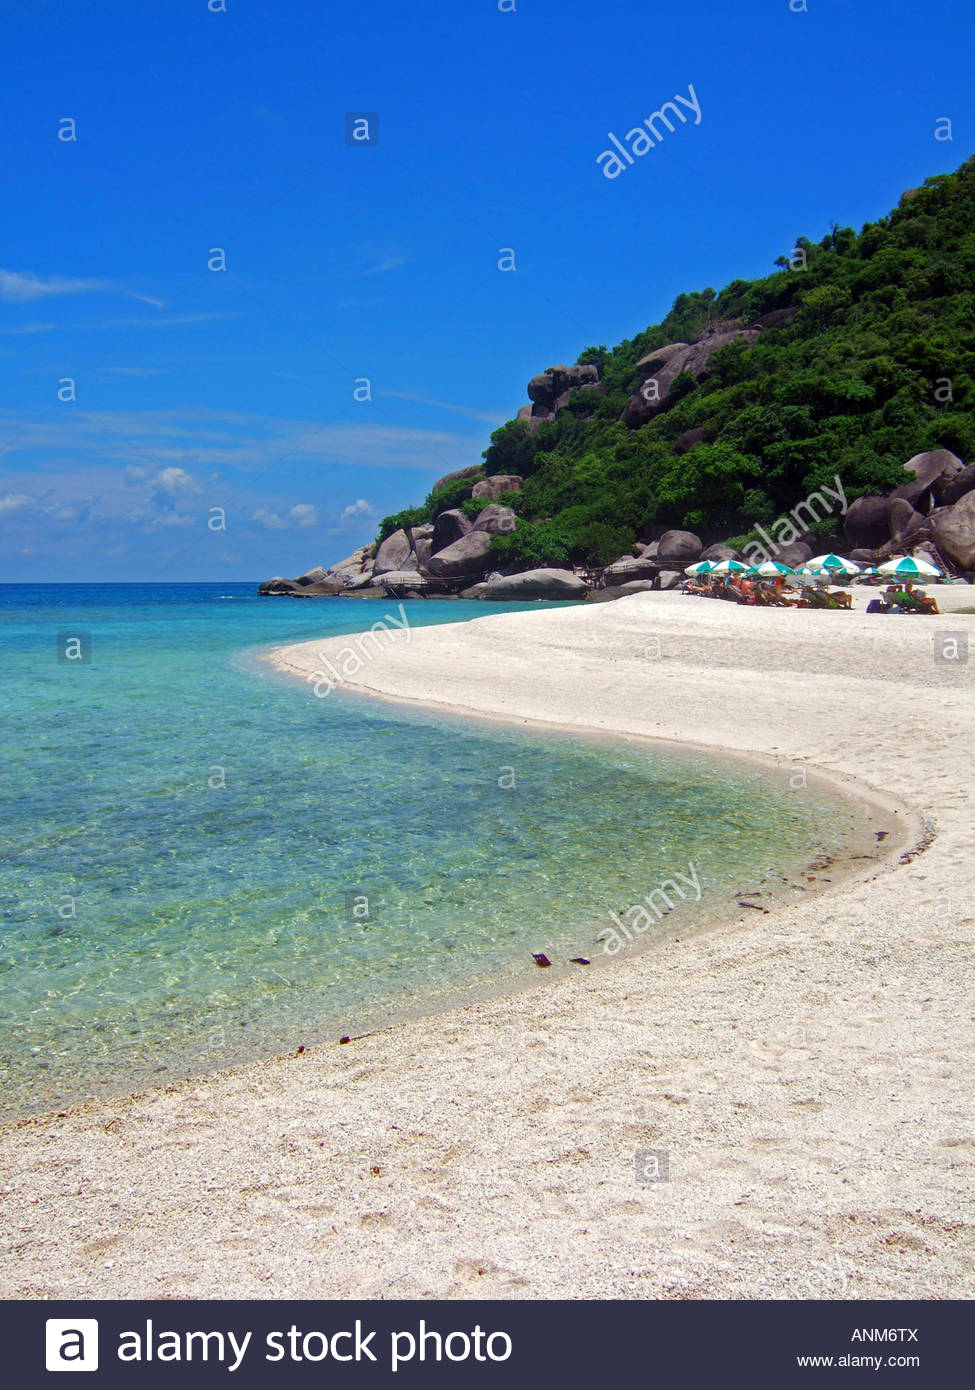 Koh Nang Yuan The Gulf Coast Beaches, Beach on Koh Nang Yuan near Koh Tao Thailand JPH0029 Stock Photo ...